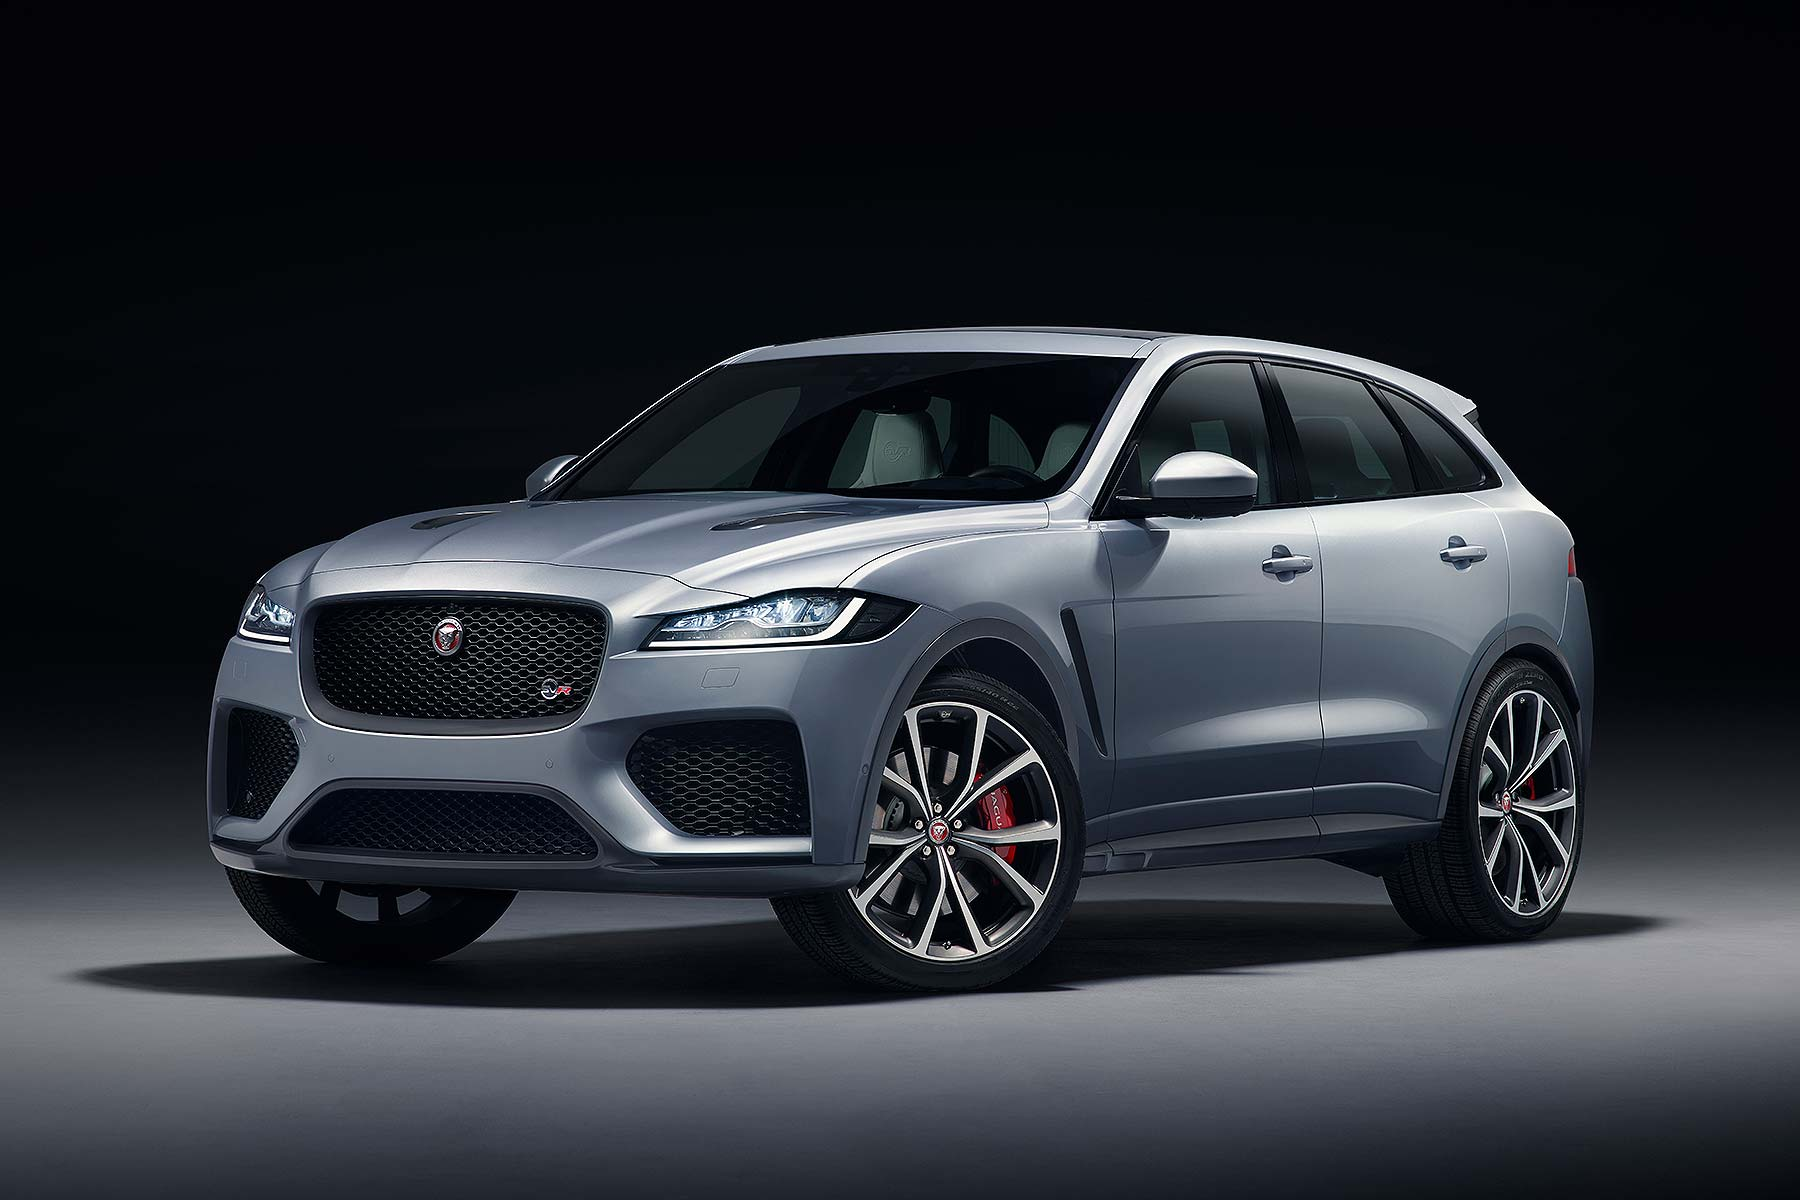 jaguar f pace svr super suv revealed in new york motoring research. Black Bedroom Furniture Sets. Home Design Ideas